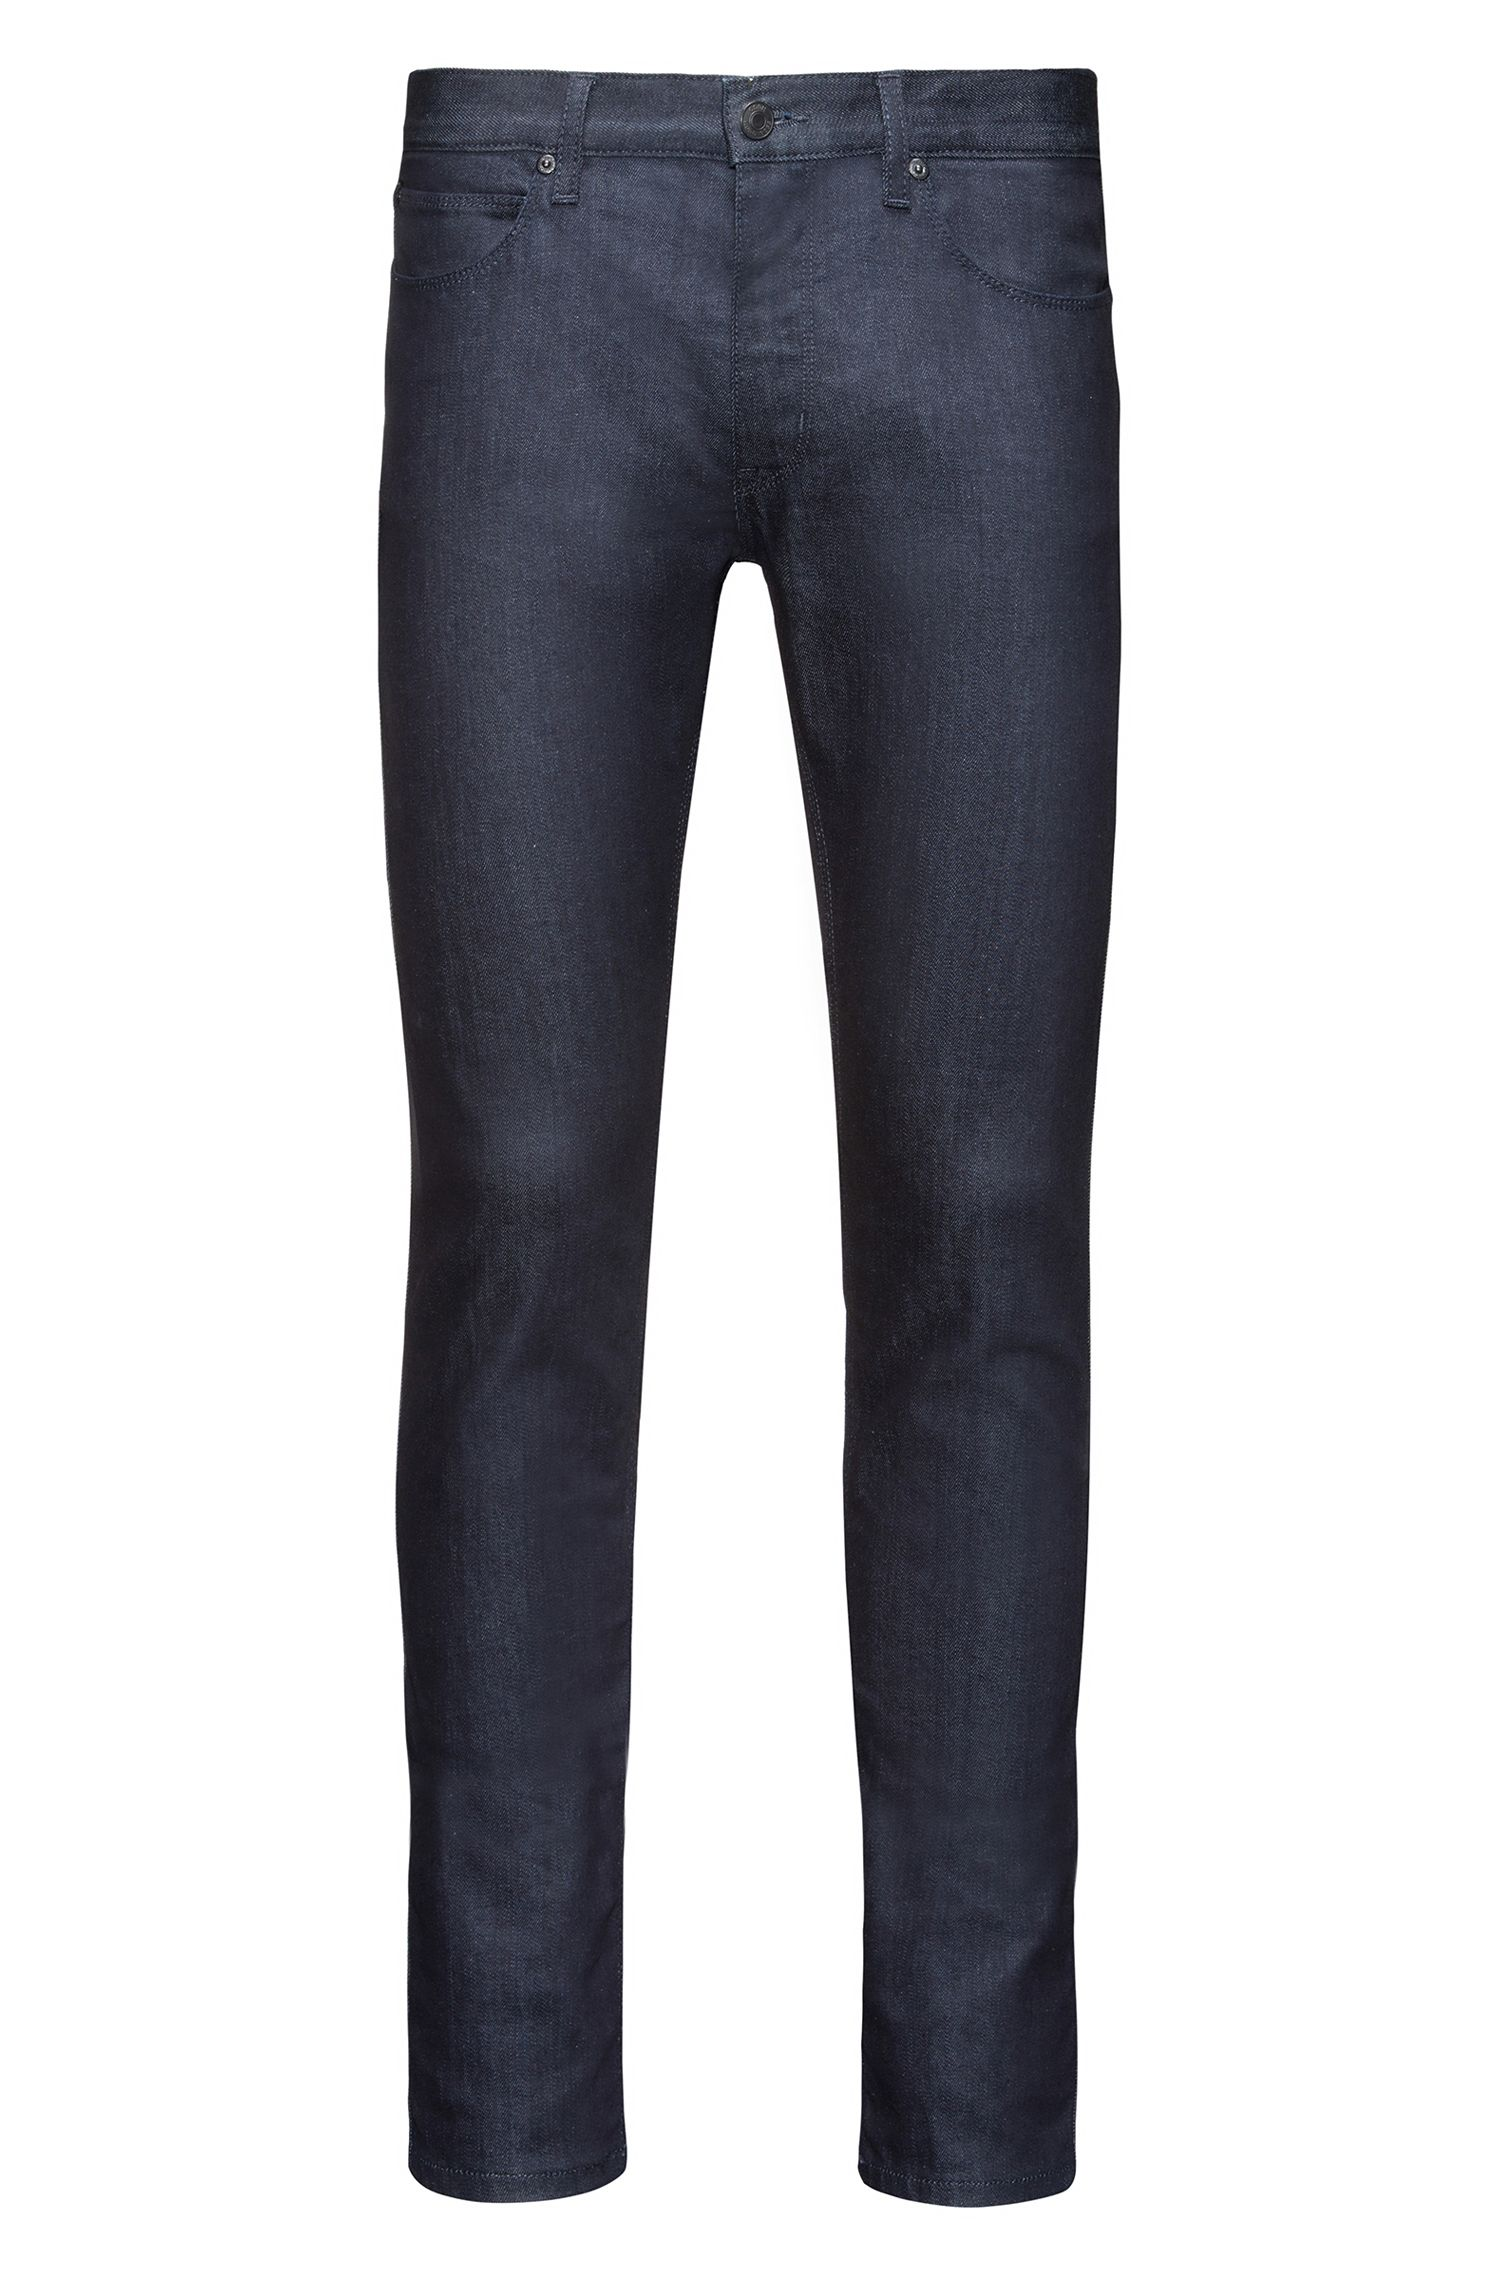 Skinny-fit low-rise jeans in stay-blue stretch denim